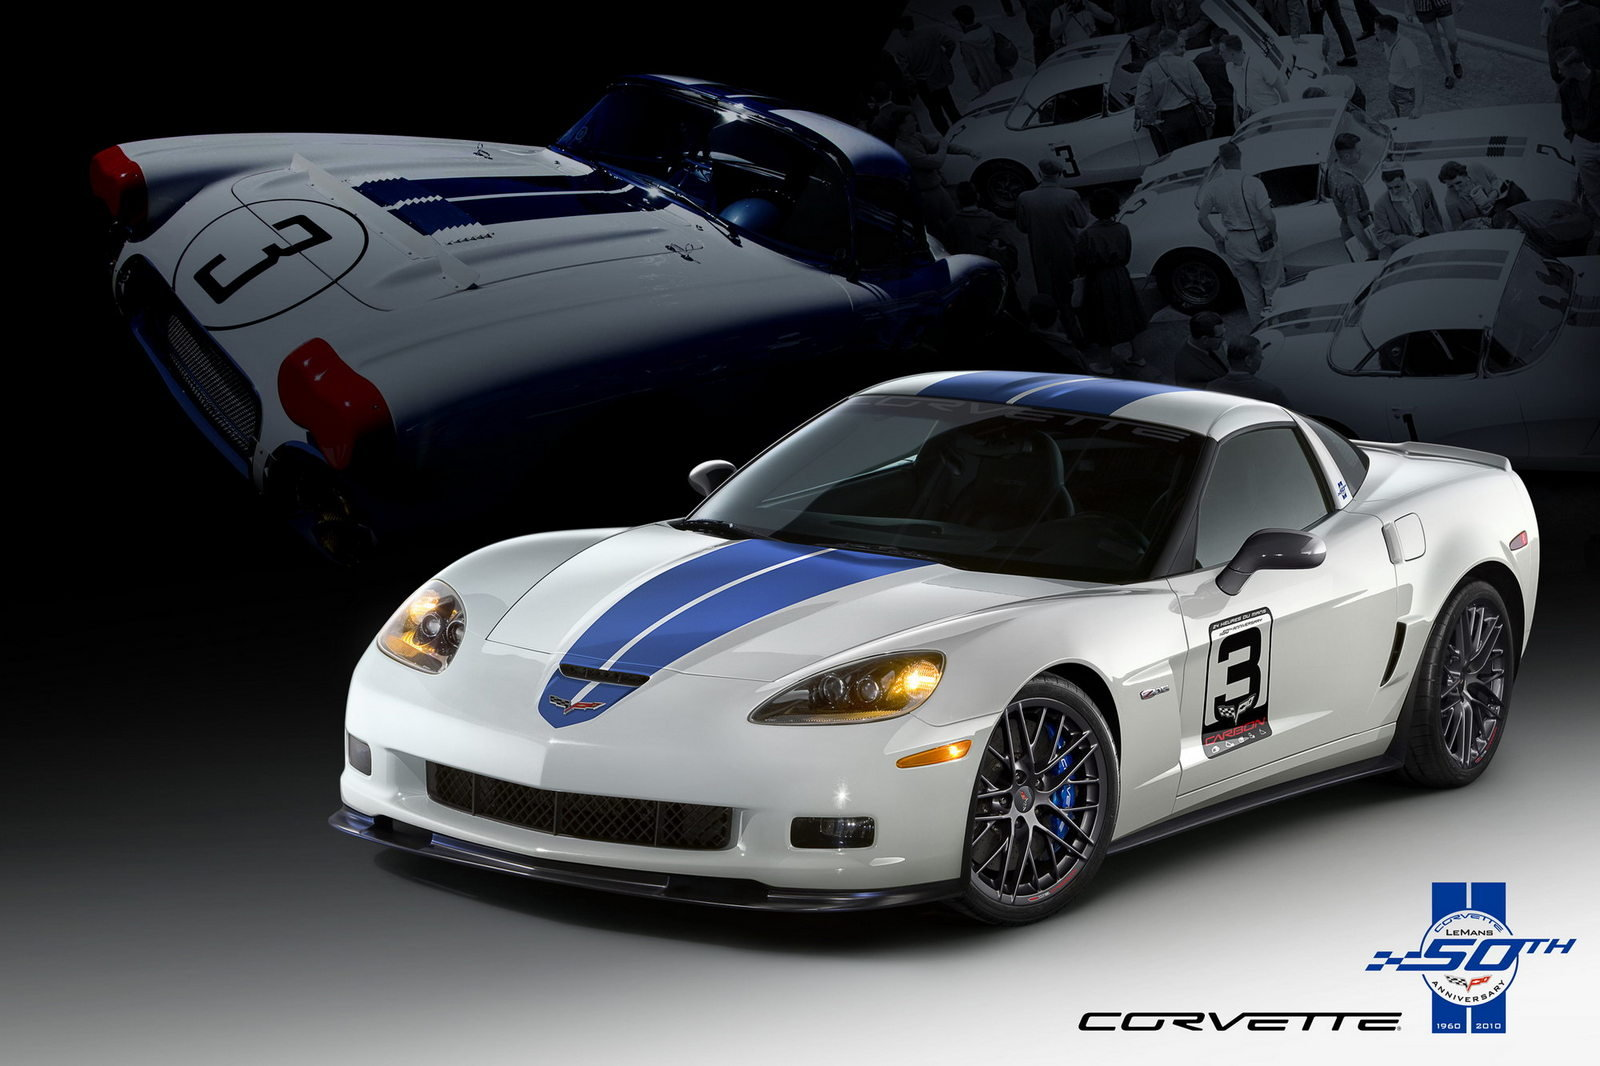 2011 chevrolet corvette z06 le mans anniversary special edition review top speed. Black Bedroom Furniture Sets. Home Design Ideas